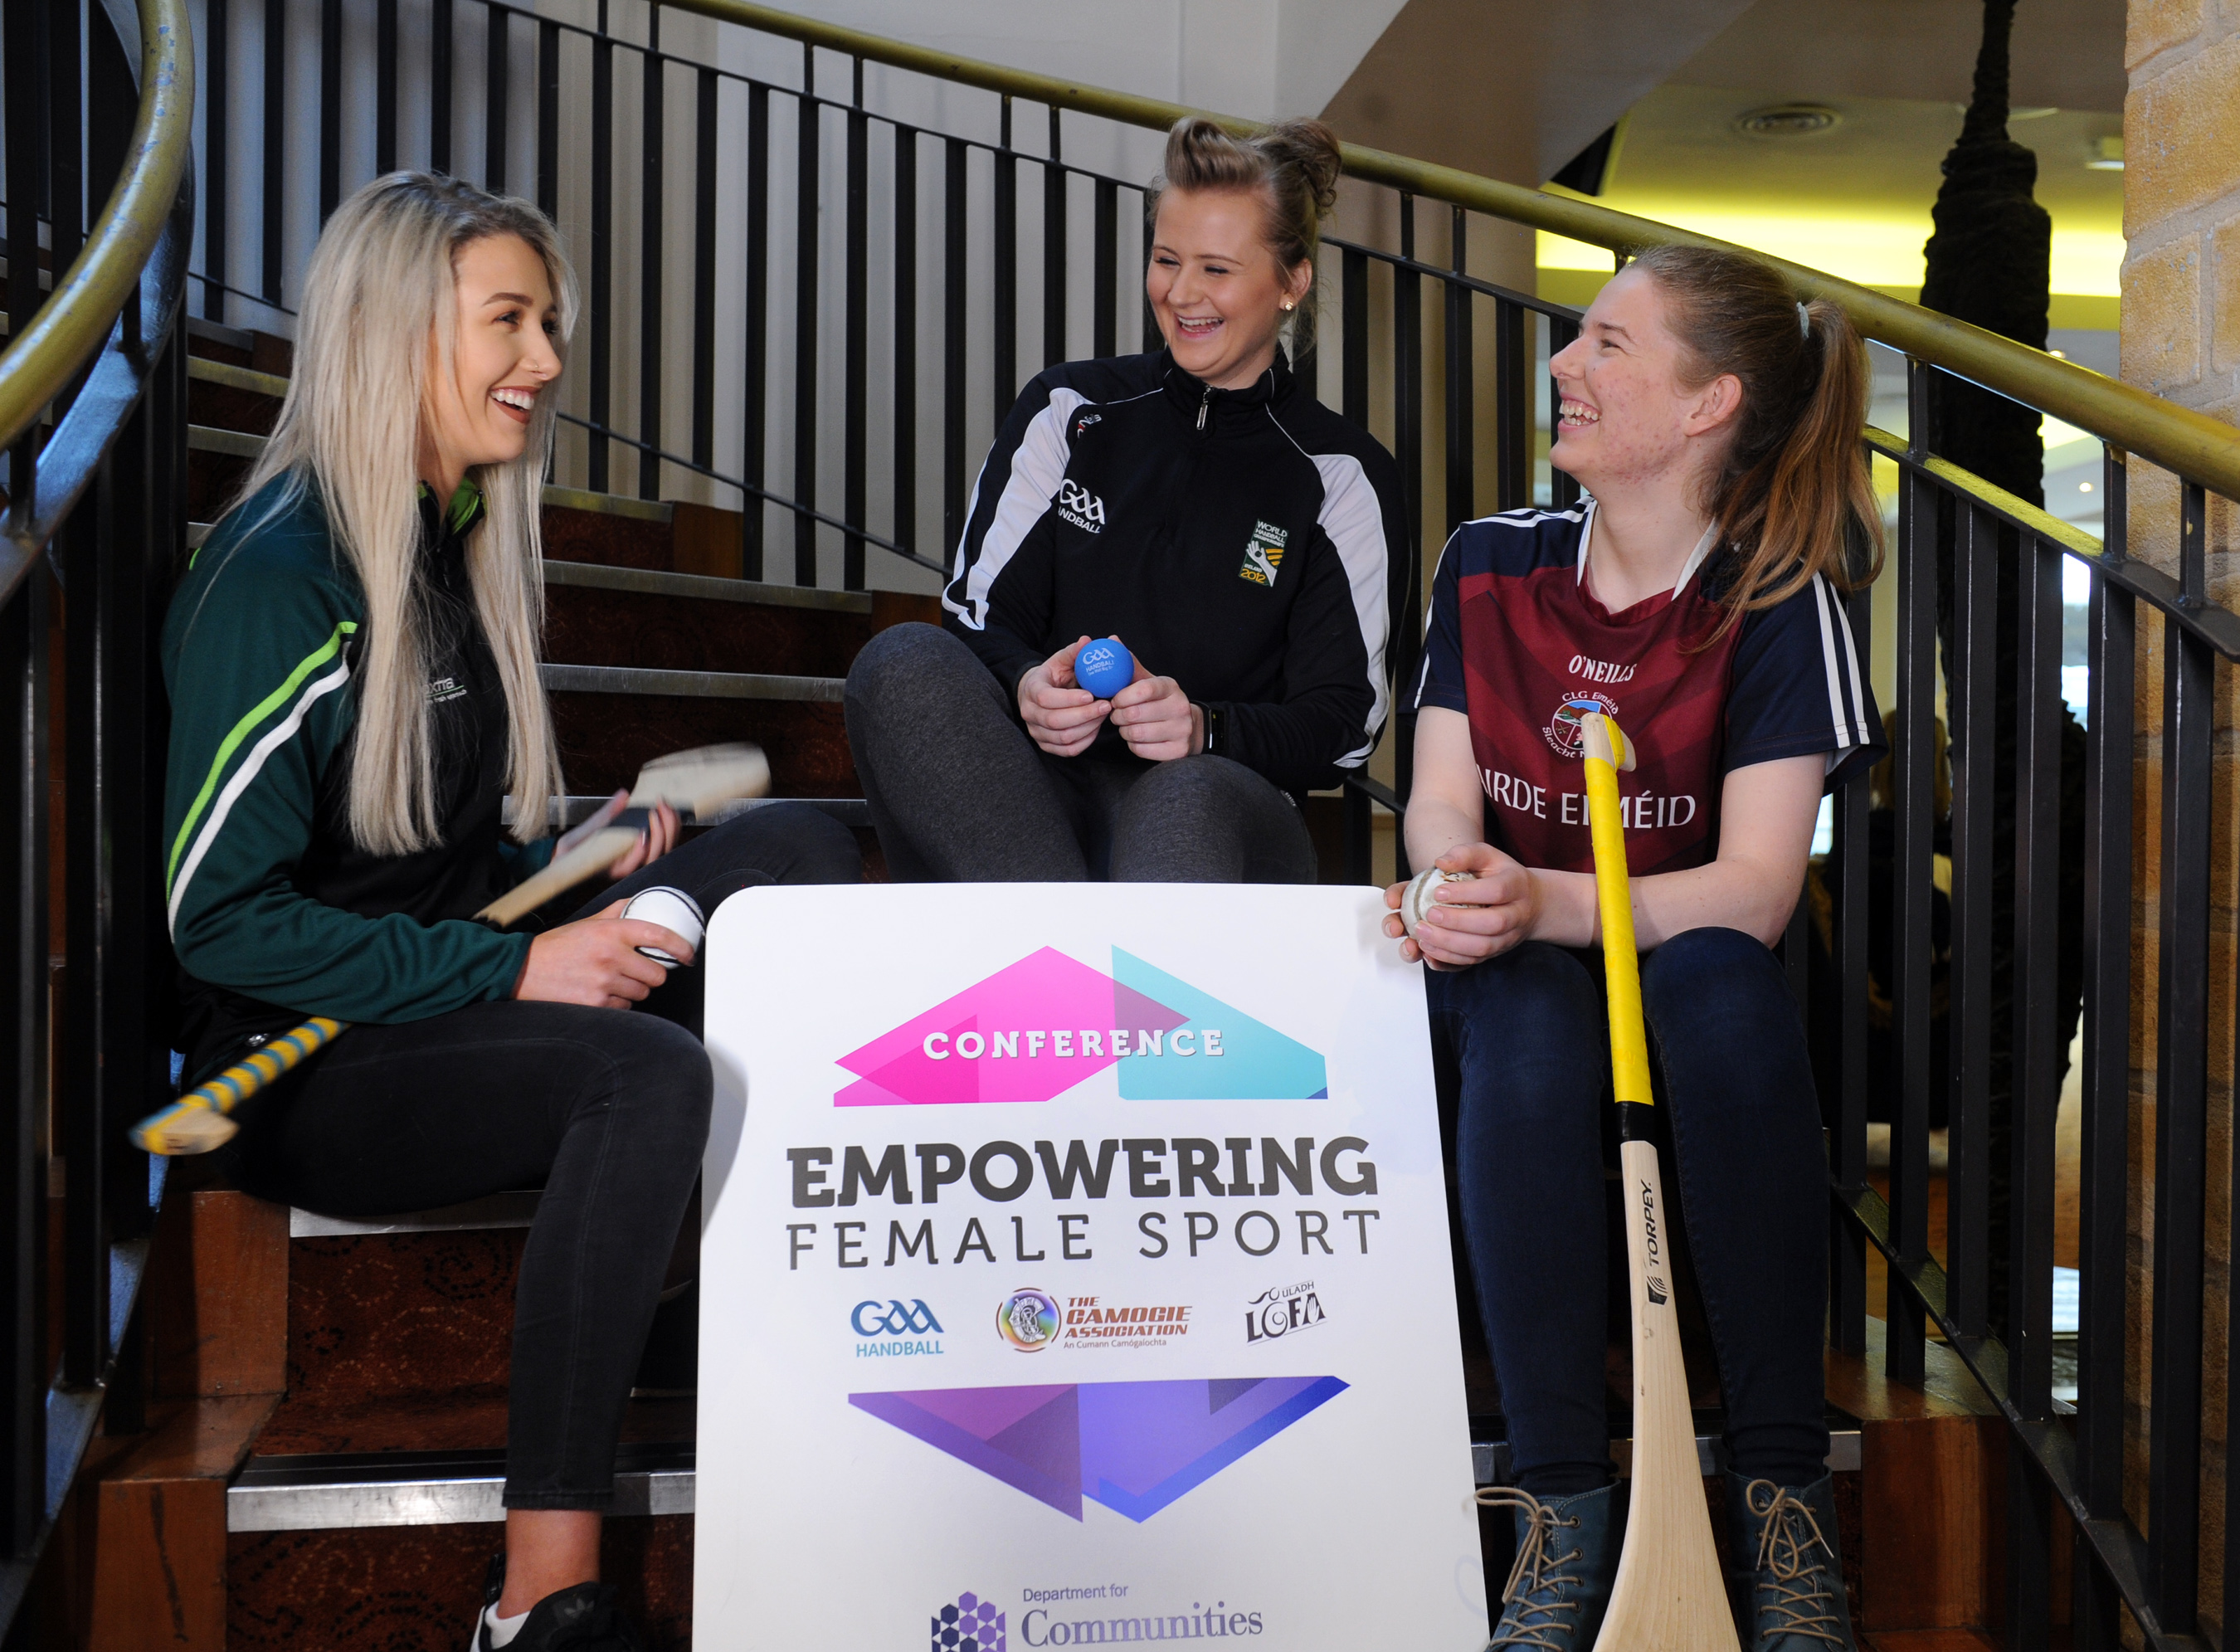 Launch of Empowering Female Sport Conference